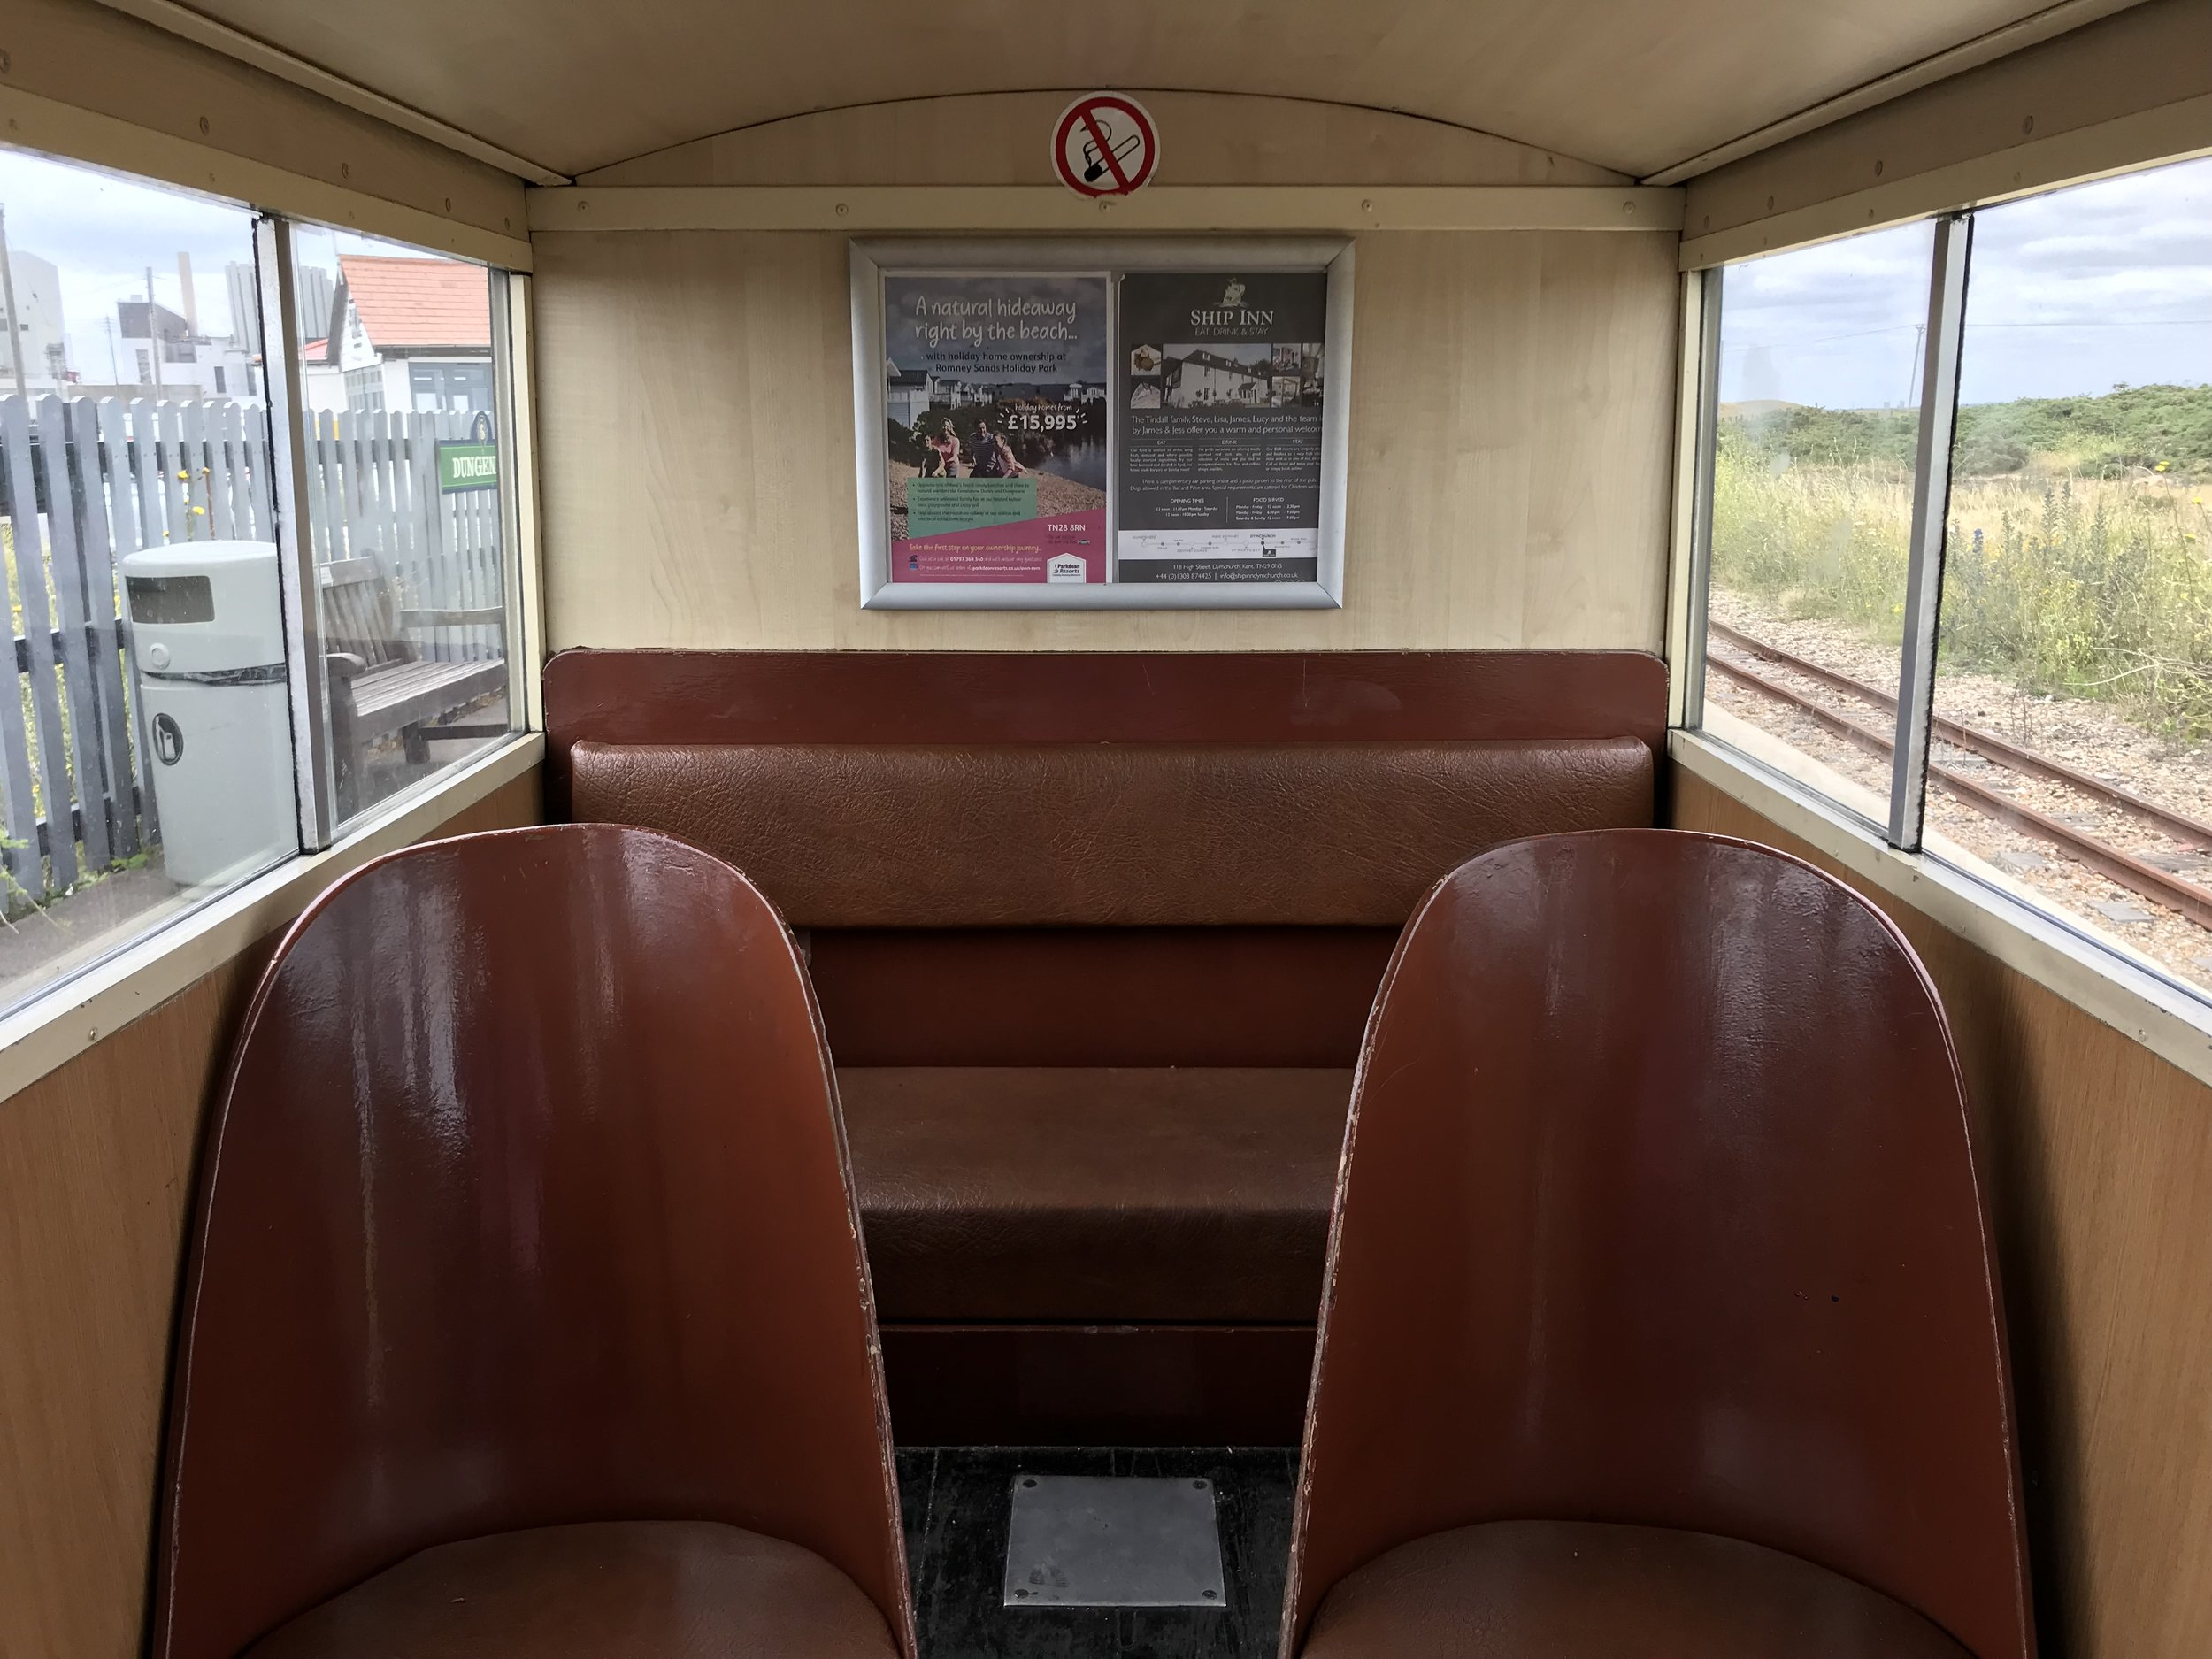 The carriages on the one-third size steam trains are just two seats wide.